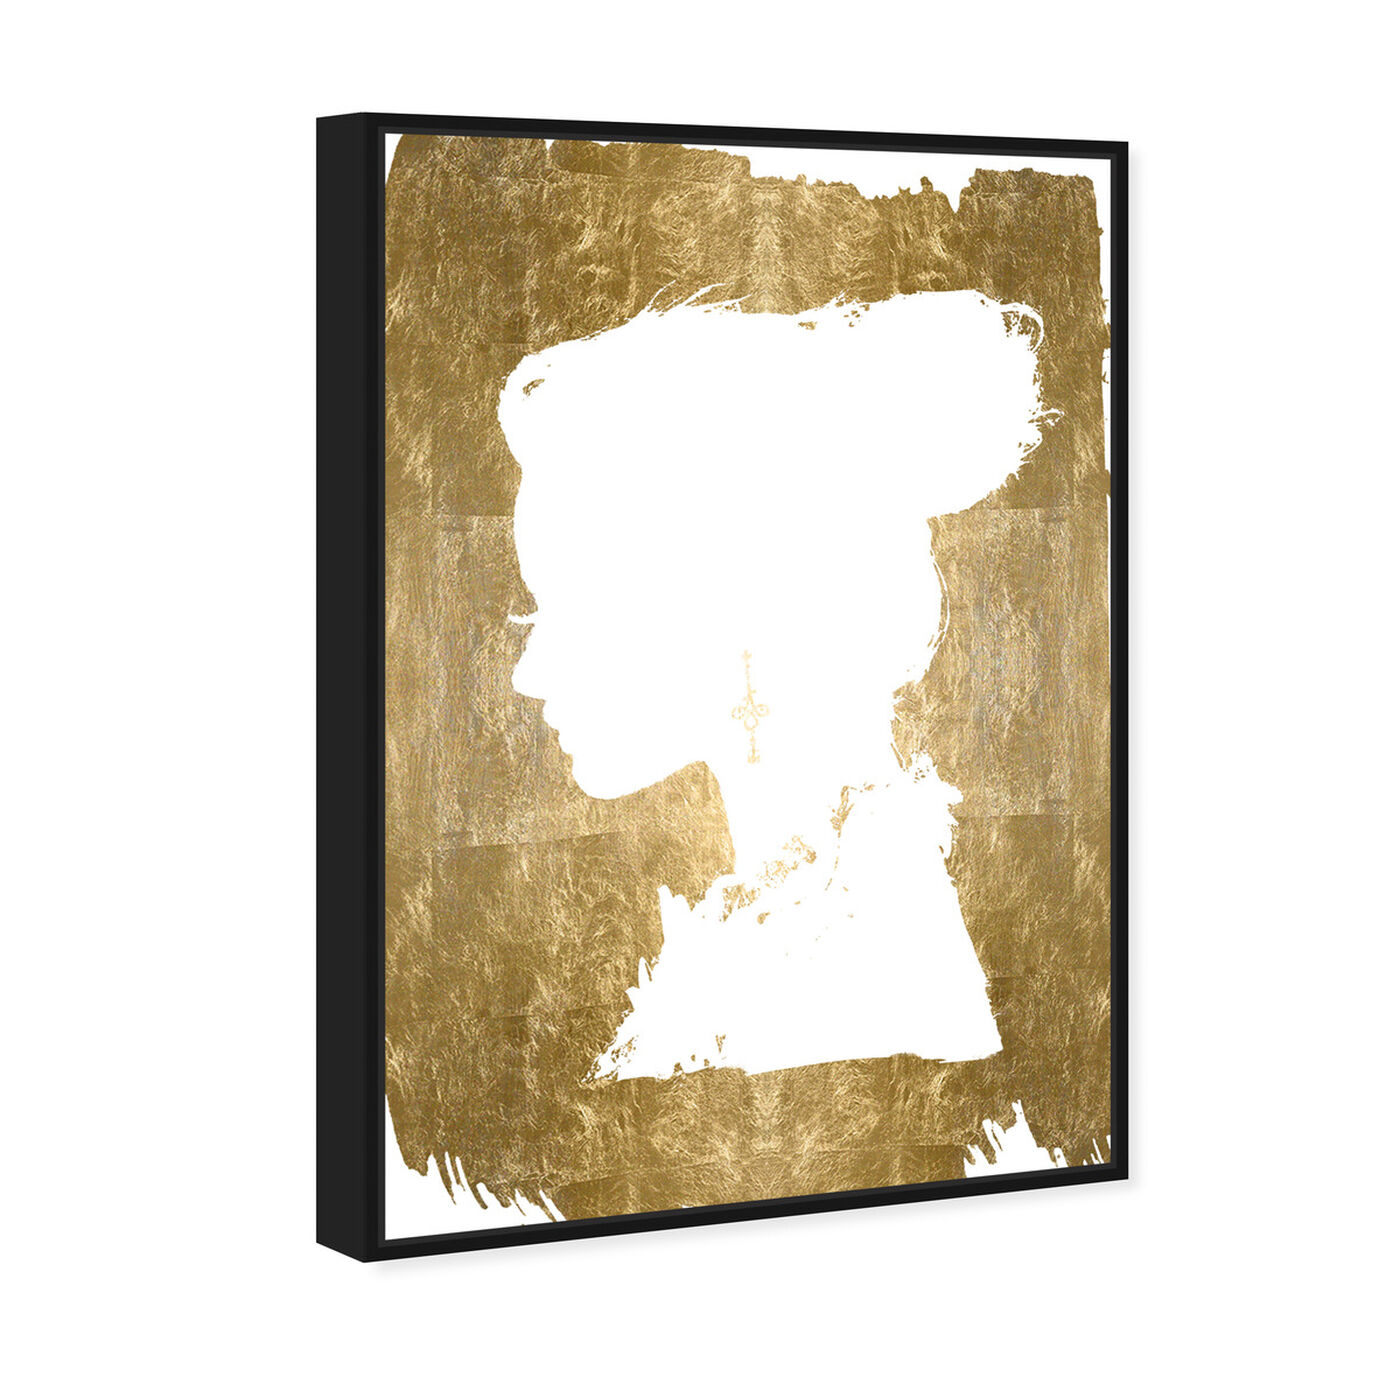 Angled view of Beauté Gold Foil featuring fashion and glam and portraits art.